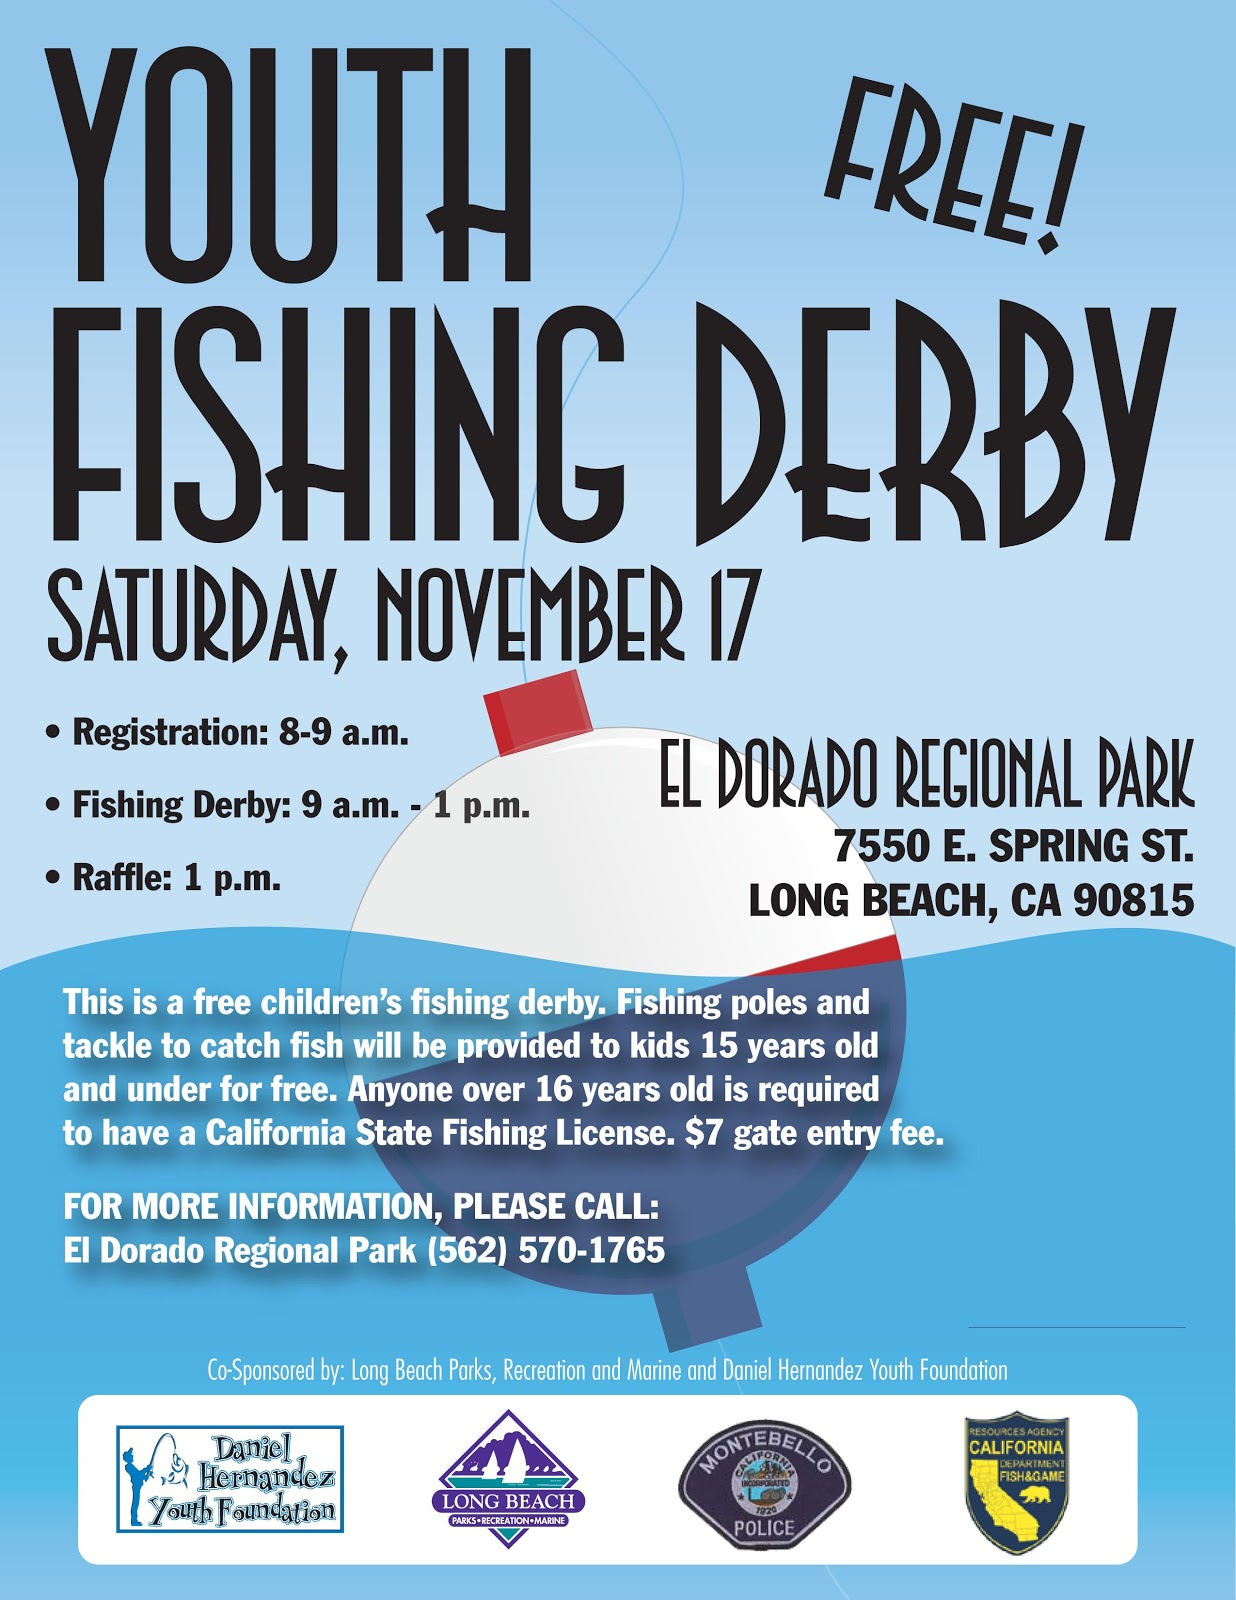 Dan 39 s journal free fishing seminar and kids event the for Youth fishing tournaments near me